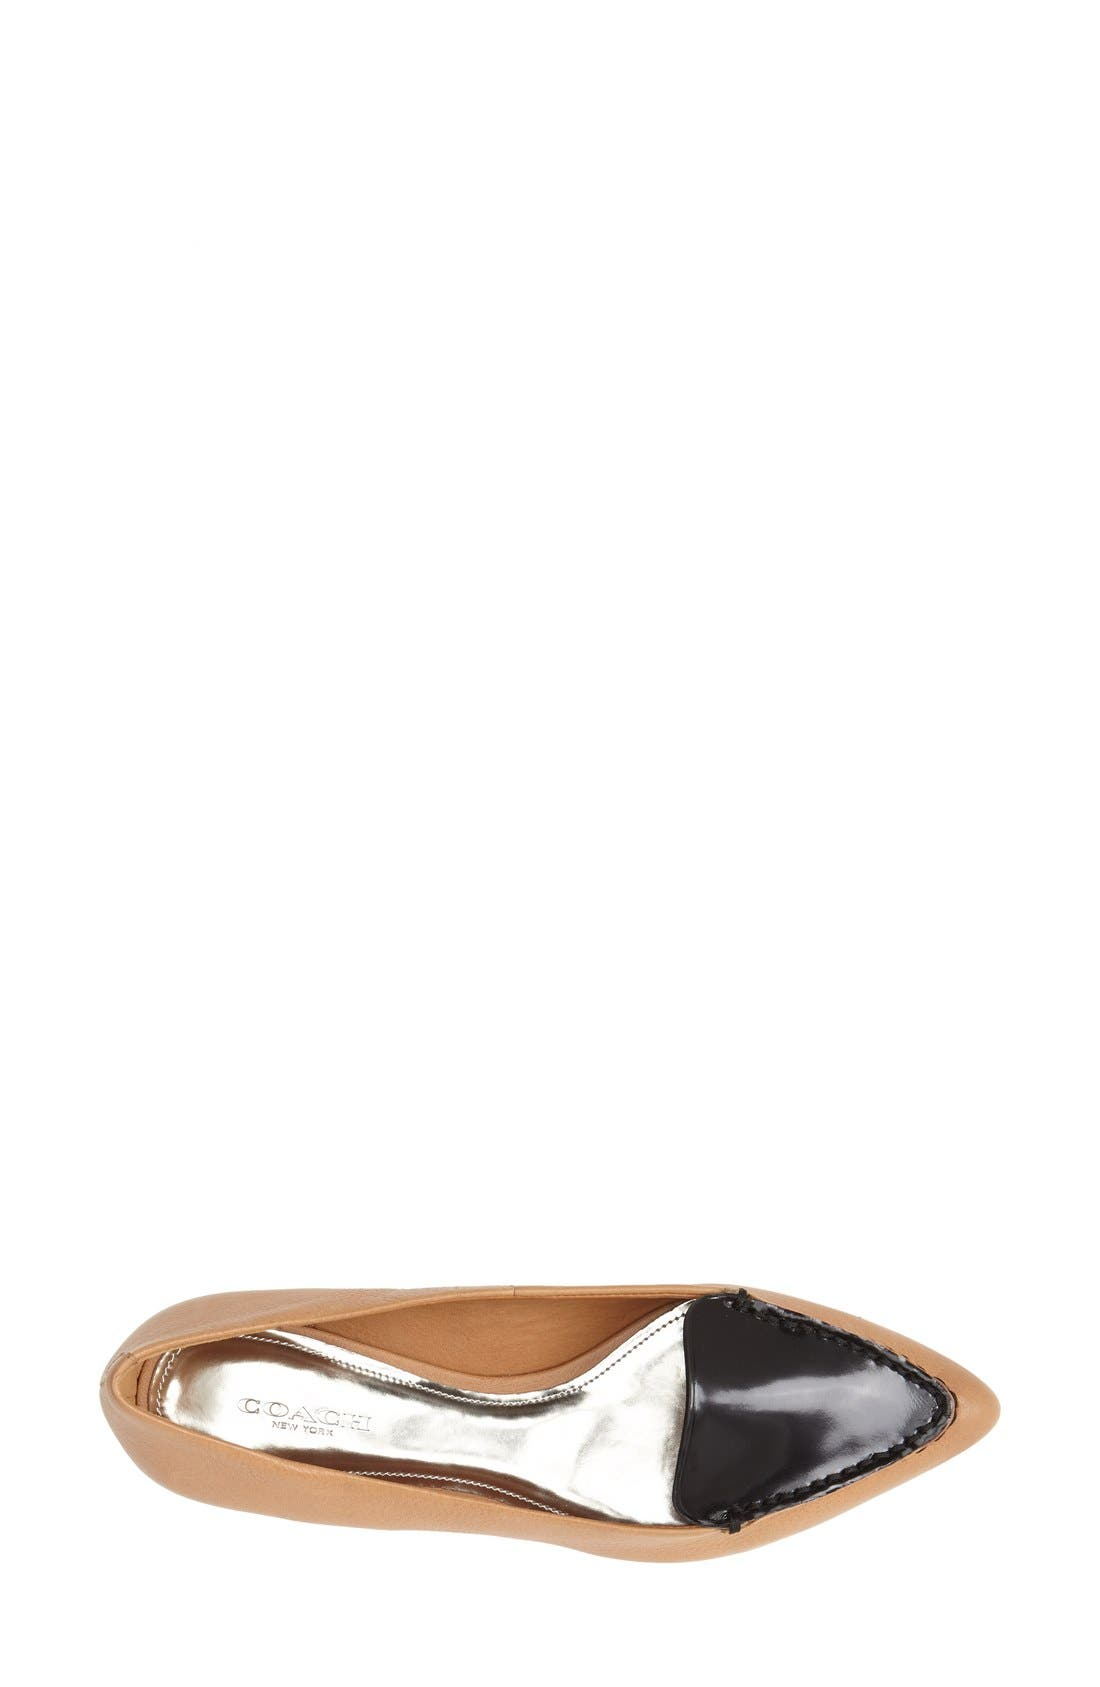 Alternate Image 3  - COACH 'Walsh' Leather Loafer (Women)